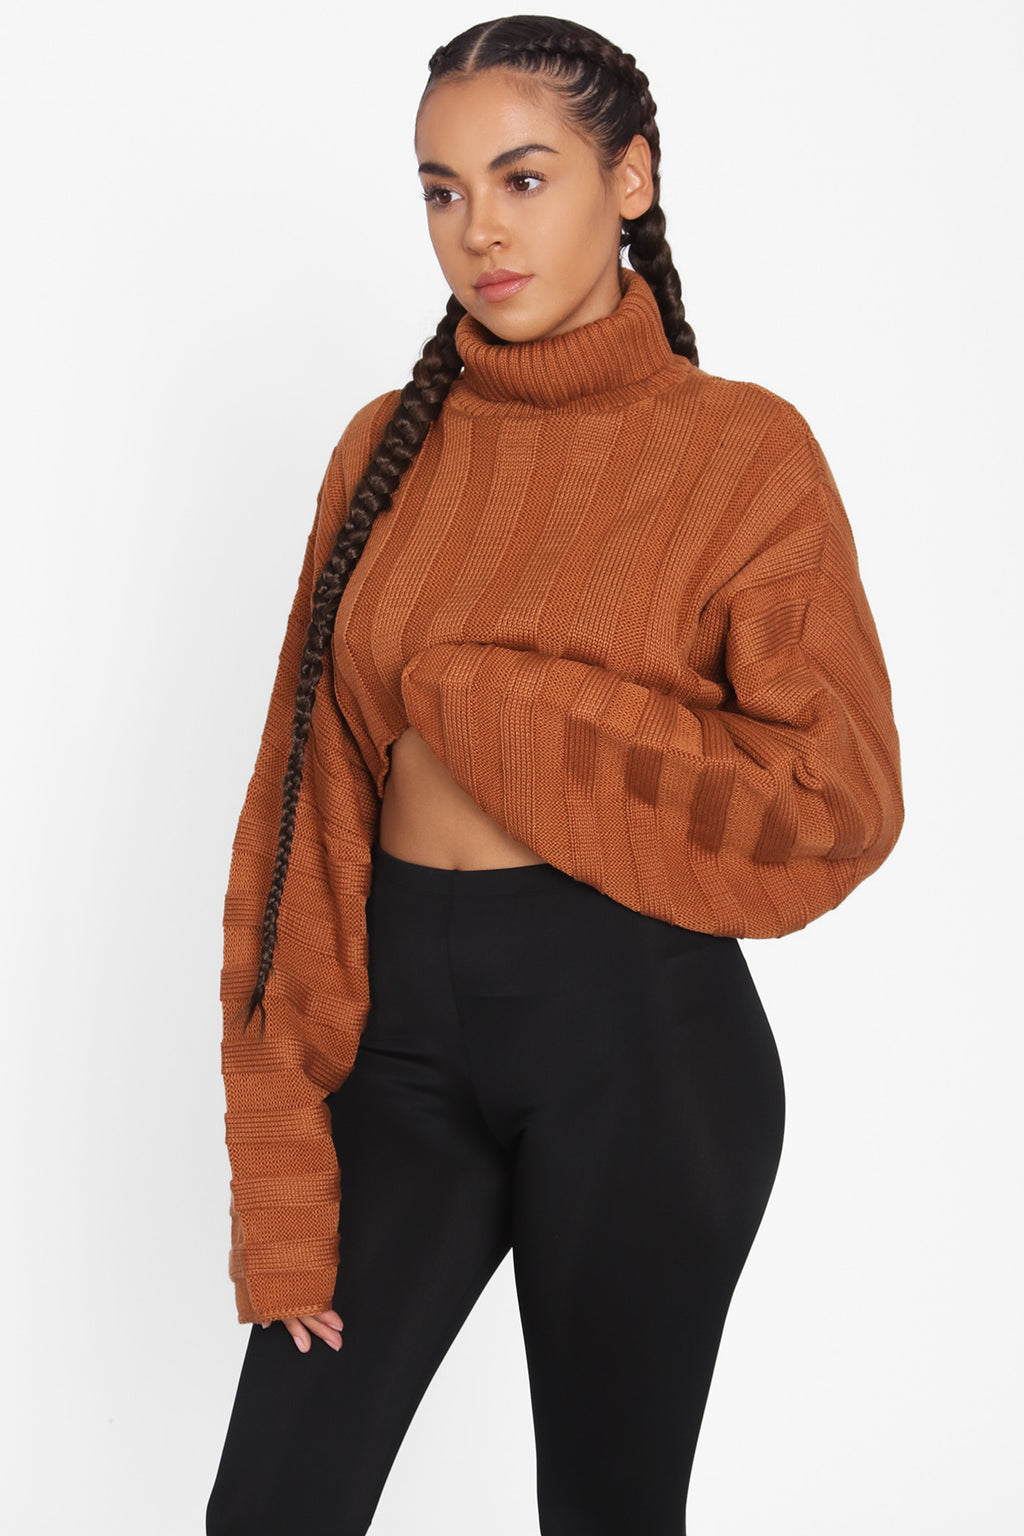 TIC TOC Cropped Sweater Copper